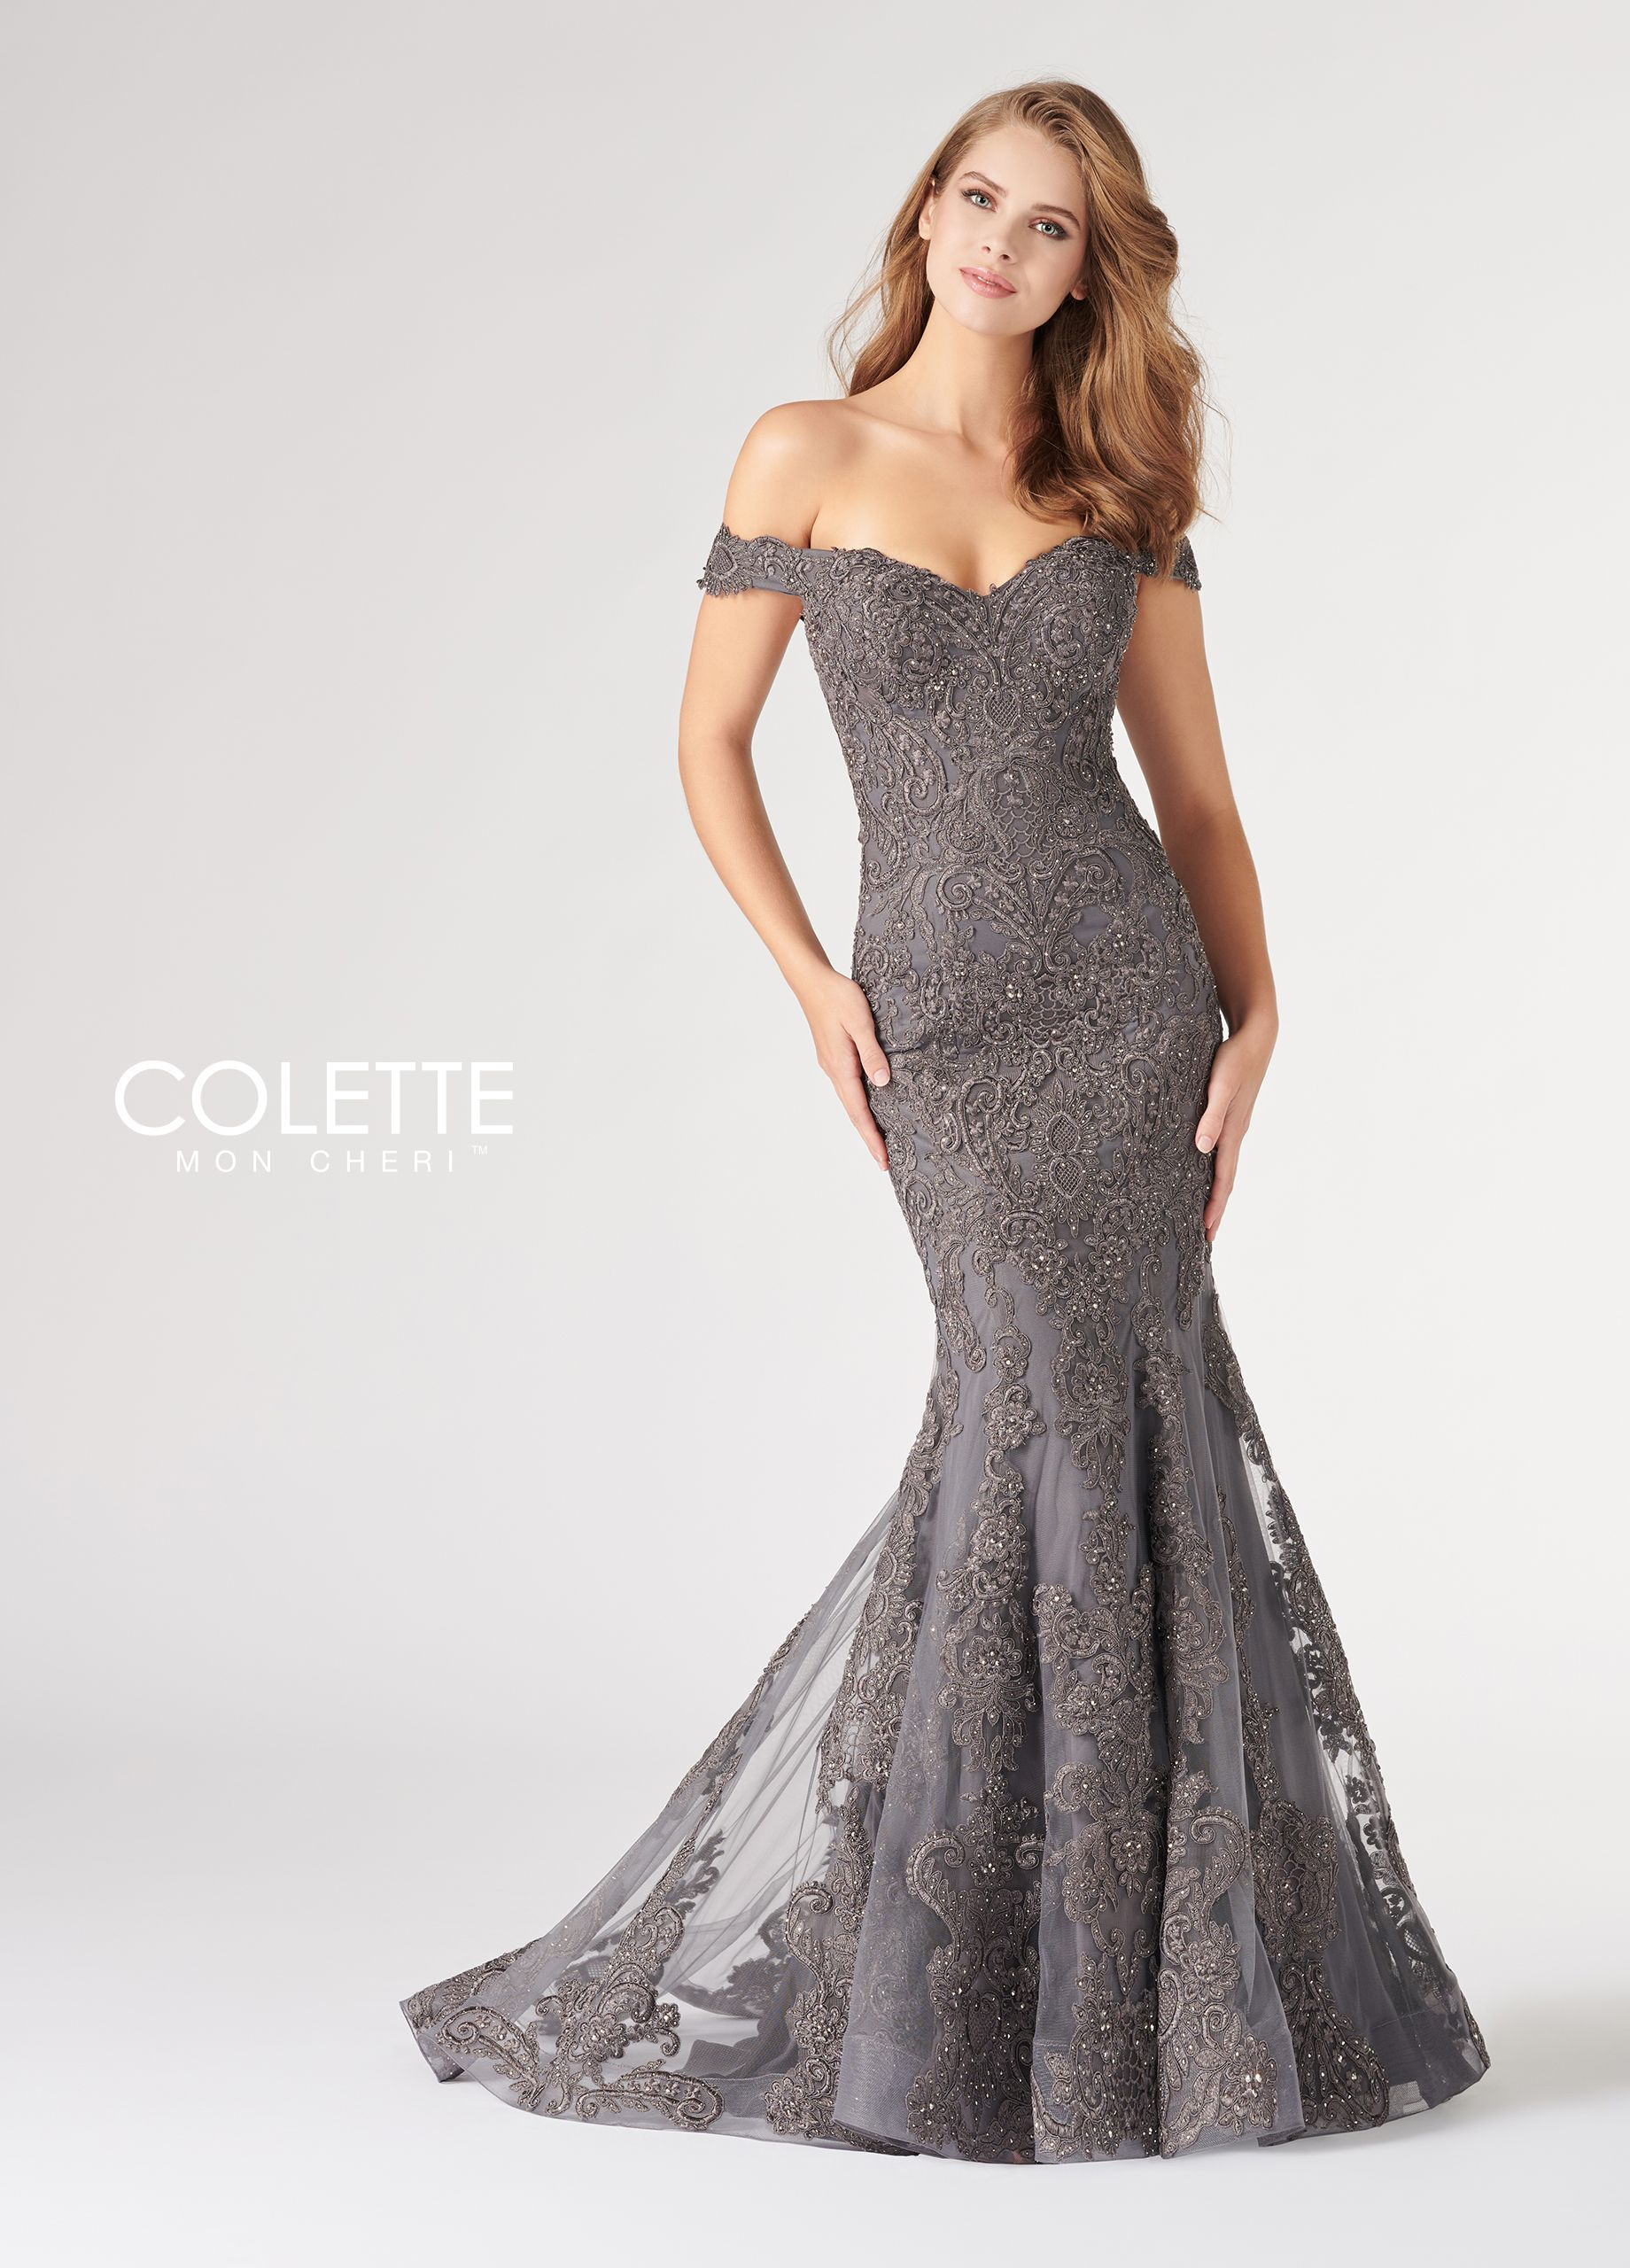 0e2dd69ca2 Colette for Mon Cheri CL19814 - Off-the-shoulder tulle and lace fit and  flare gown with cap sleeve